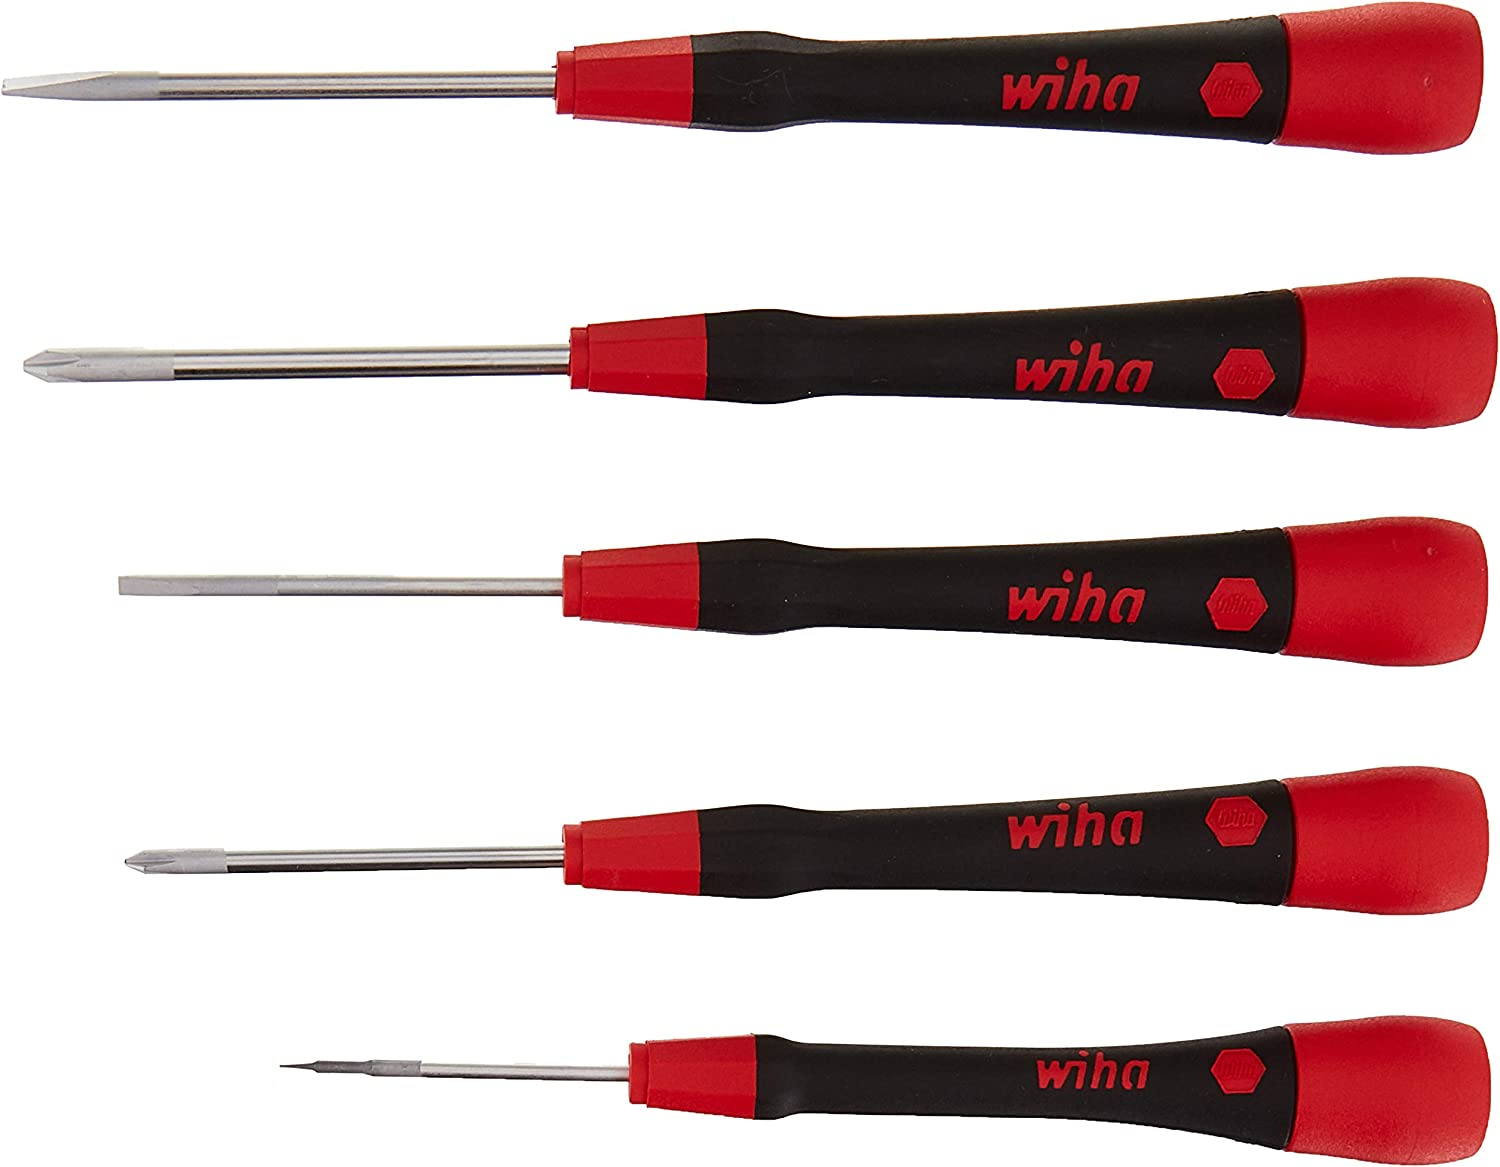 Wiha 26195 Picofinish Mini Precision Screwdriver Set, 5 Pcs